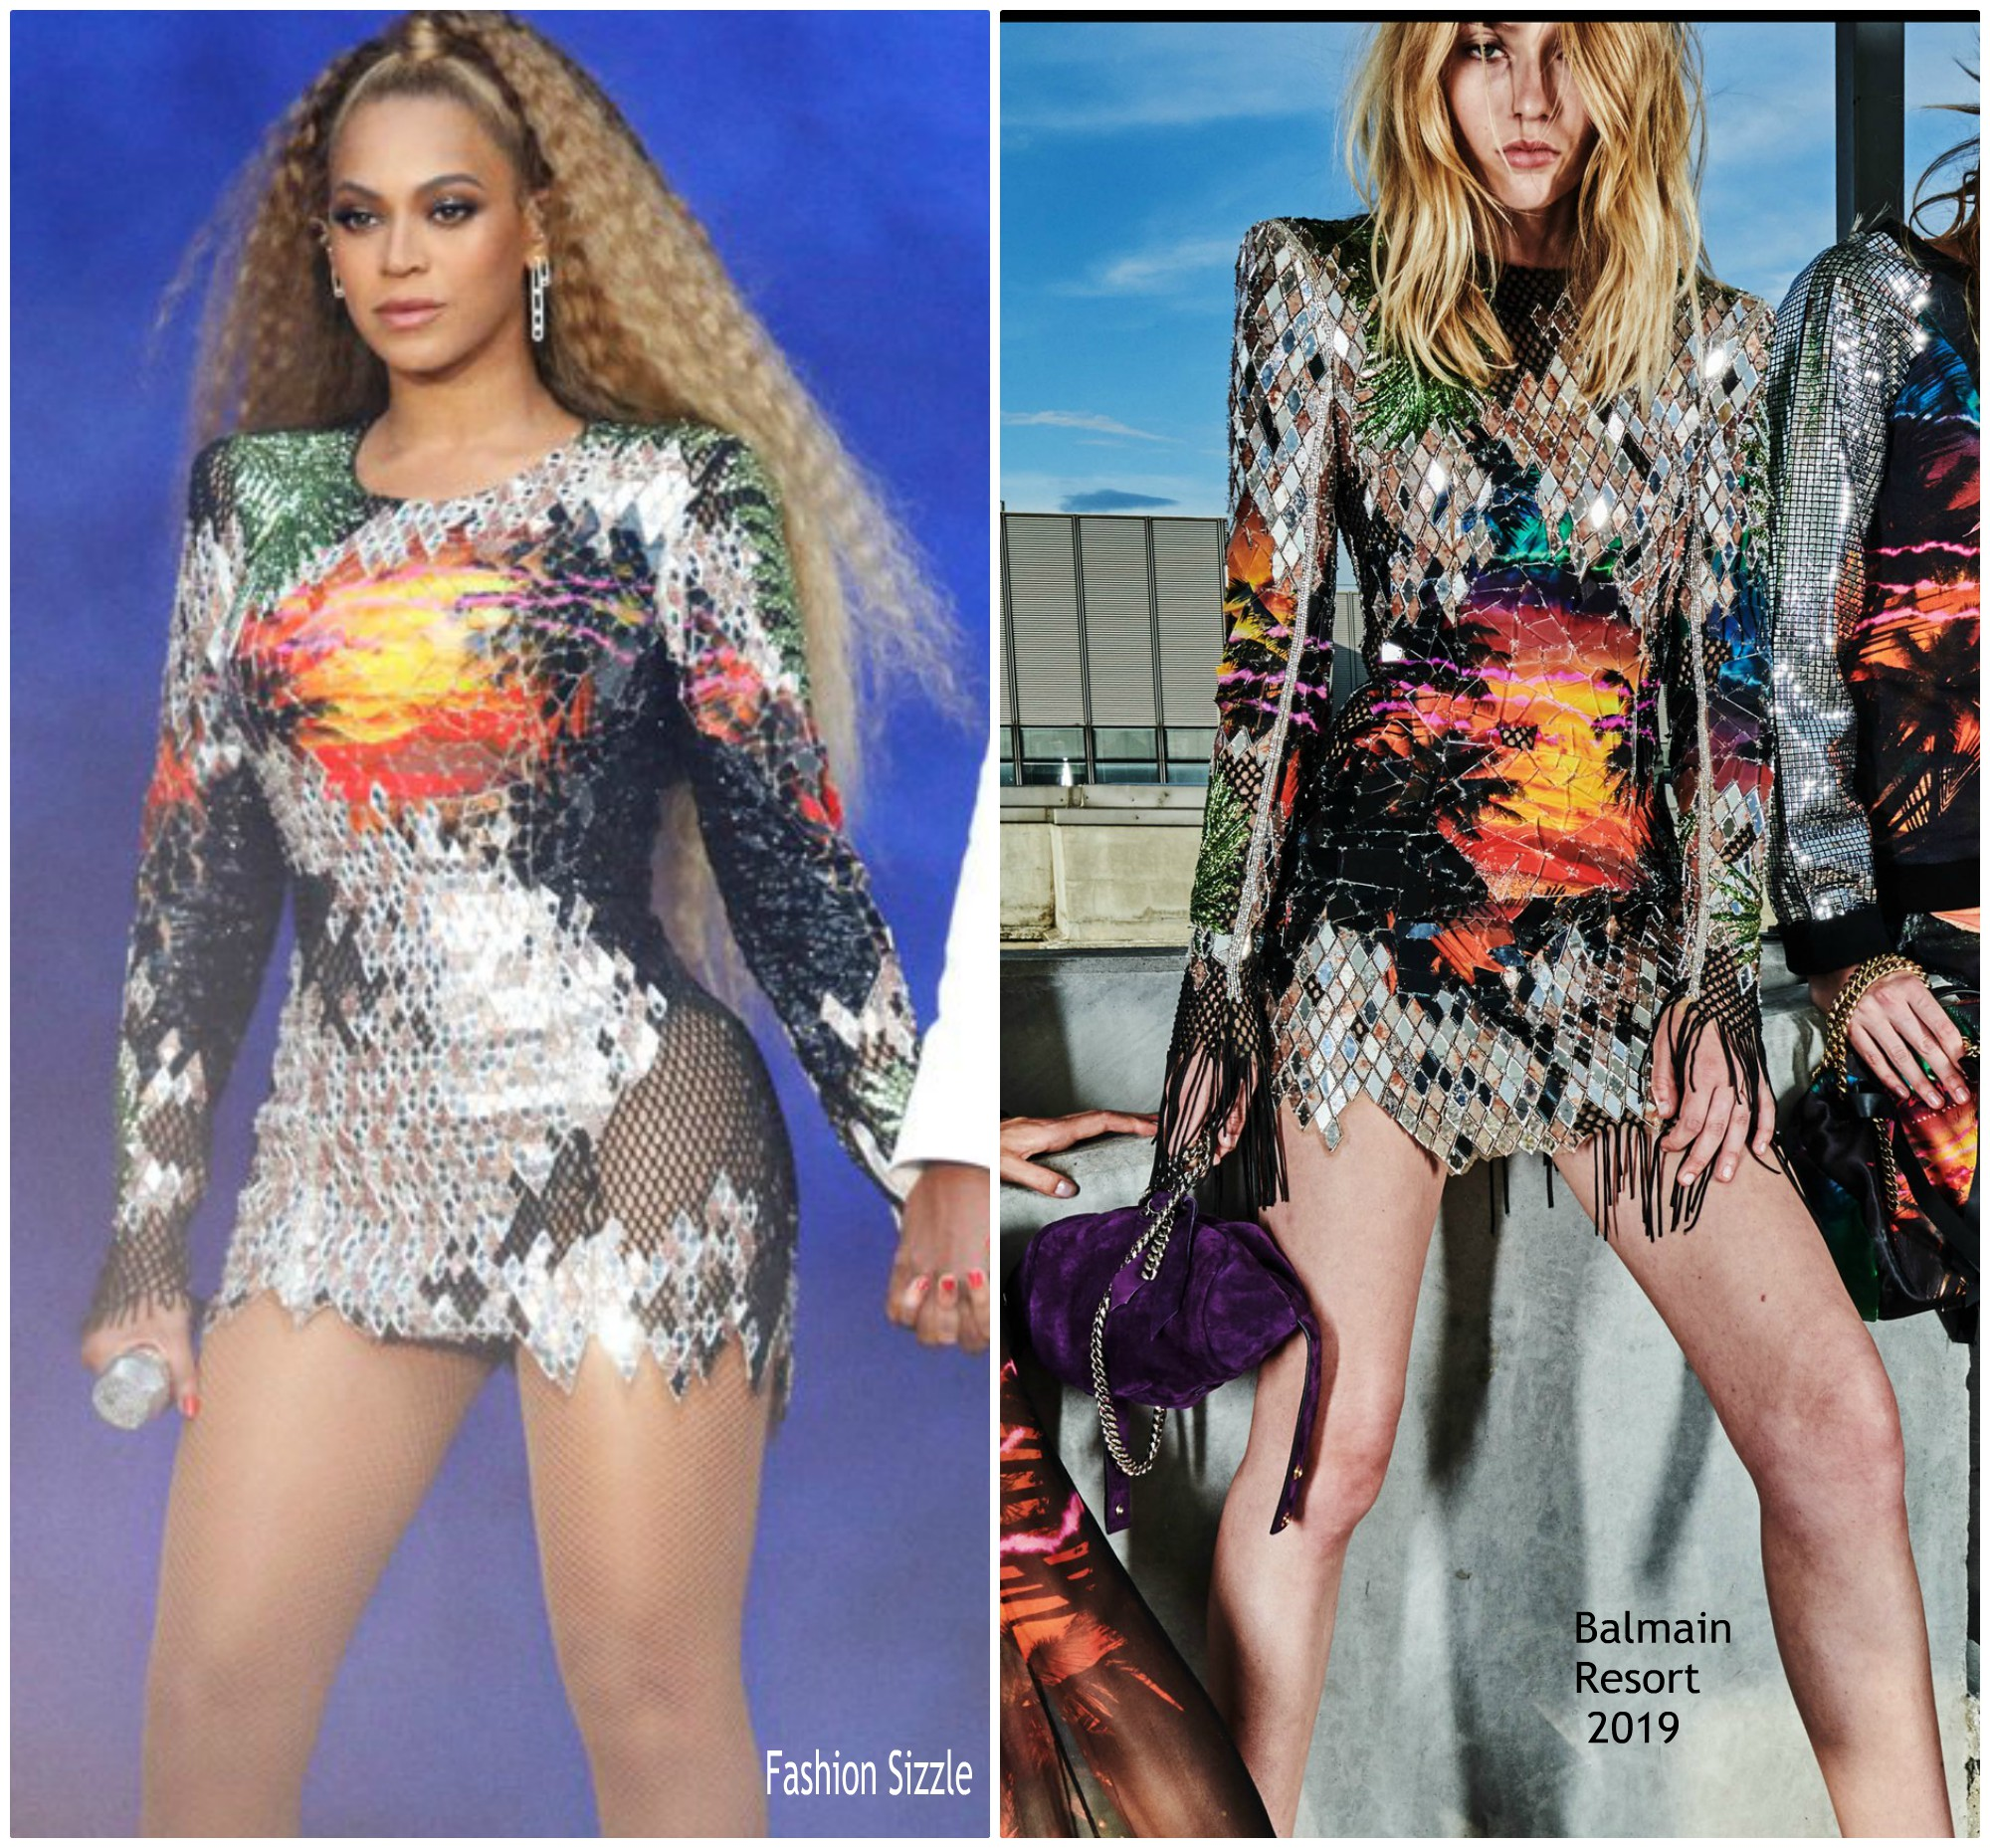 beyonce-knowles-in-balmain-on-the-run-11-tour-cologne